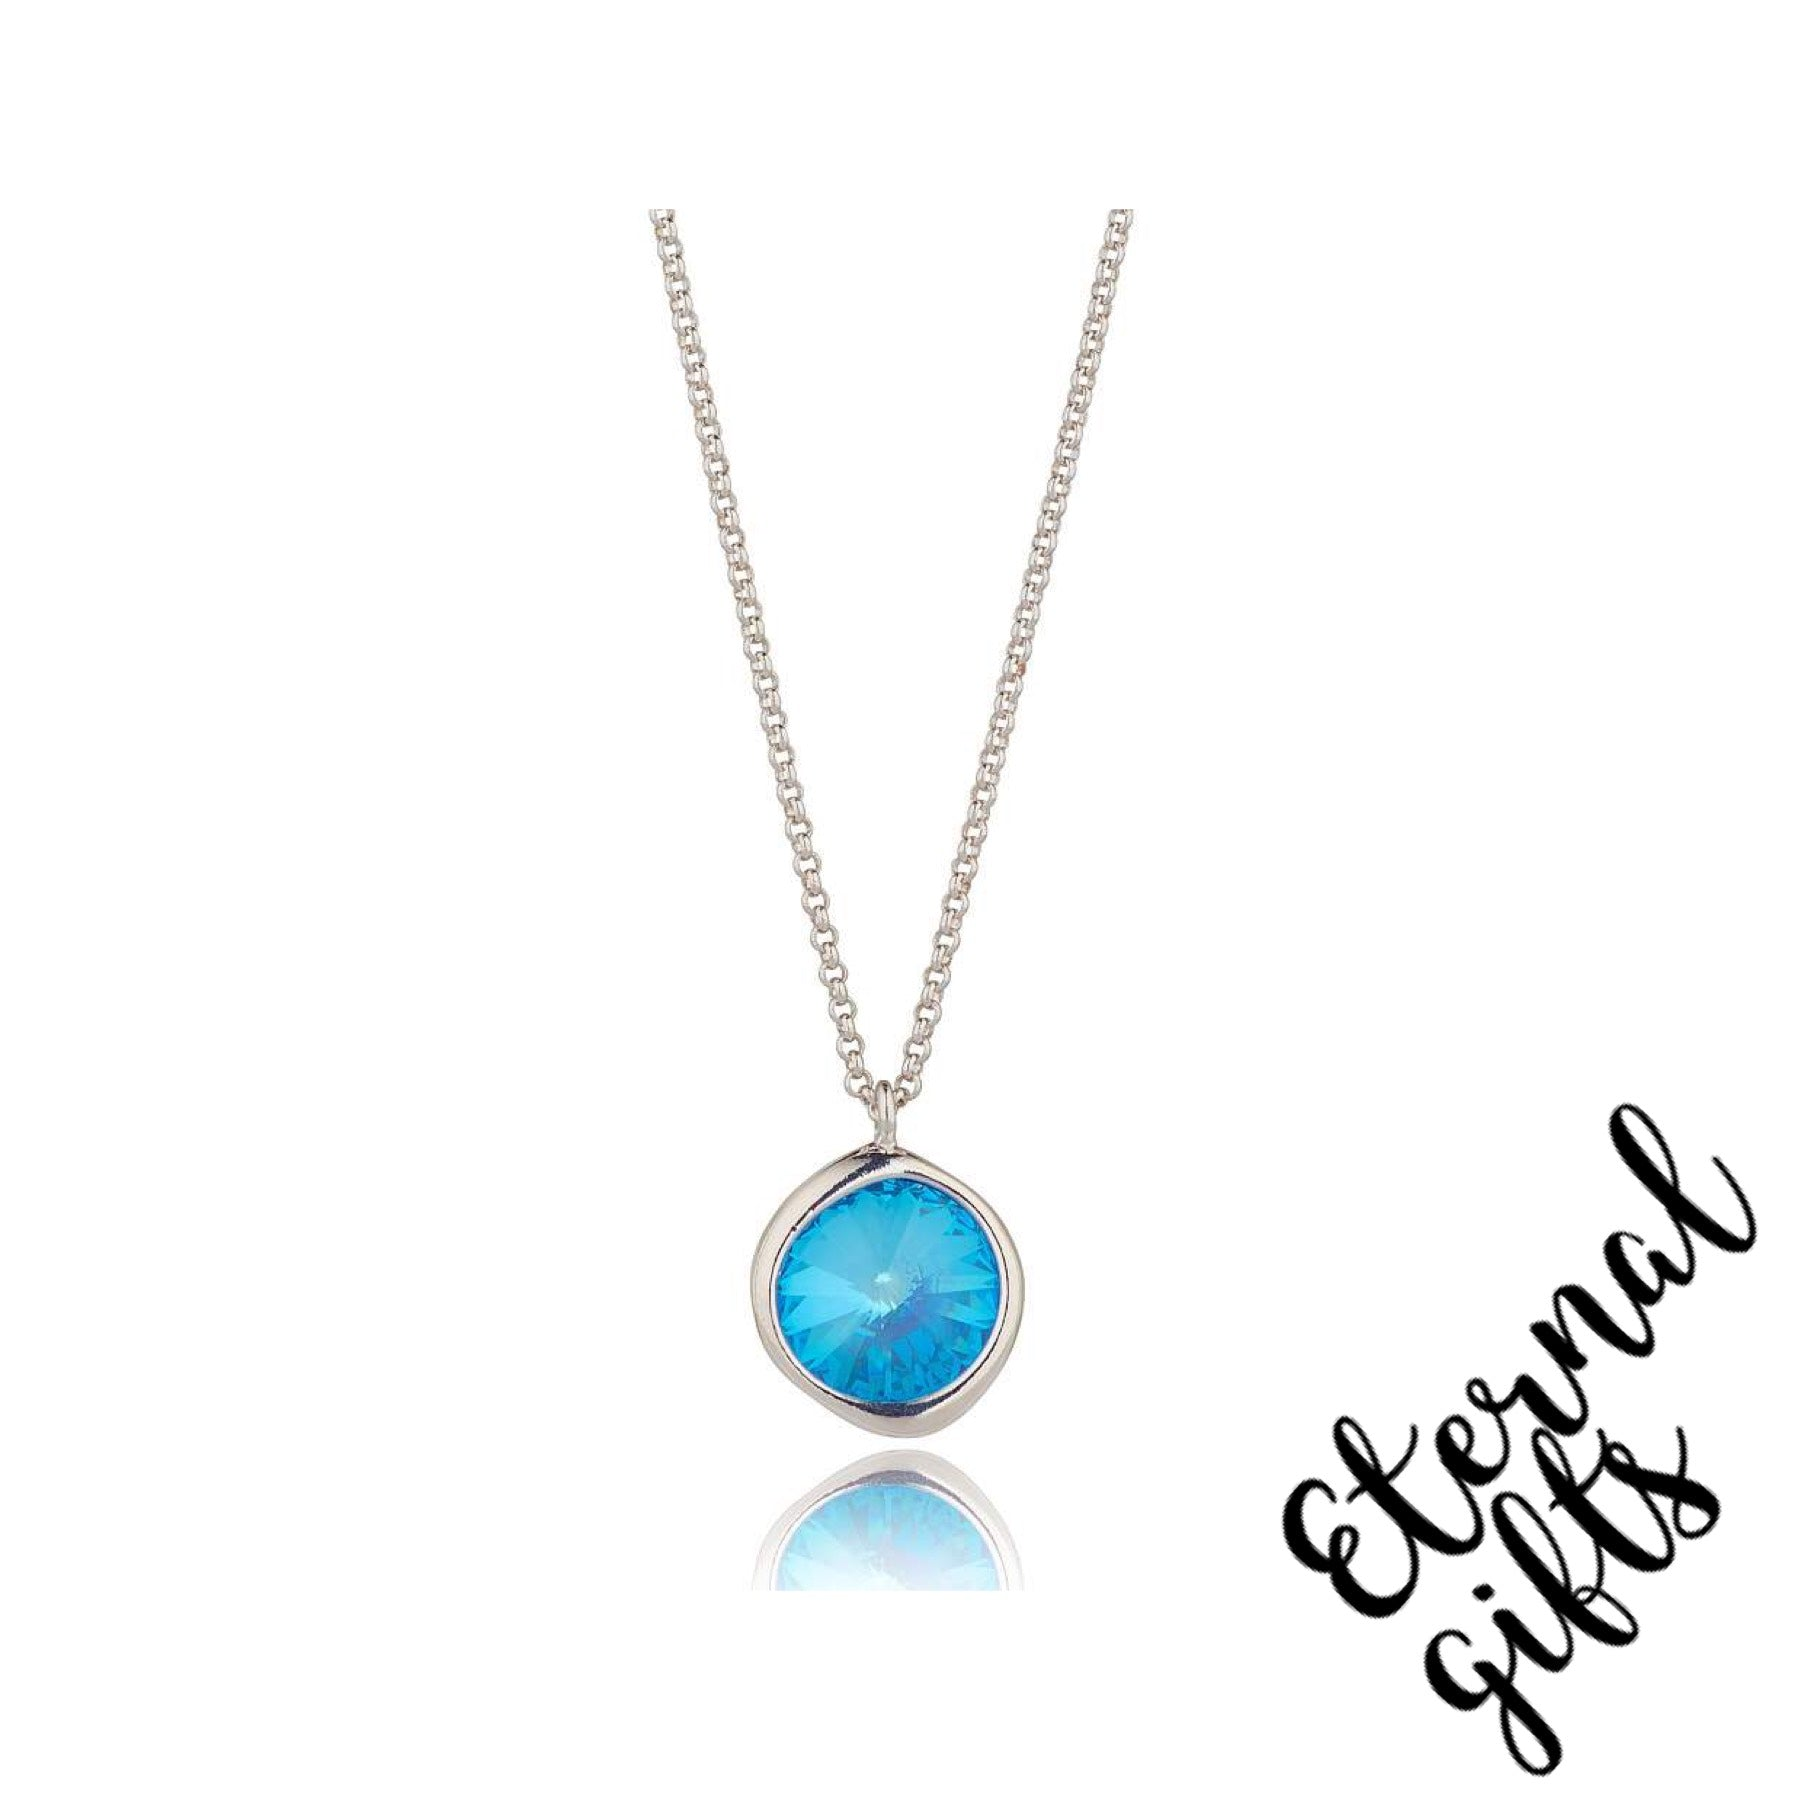 Ocean Blue Delite Short Necklace - Knight and Day